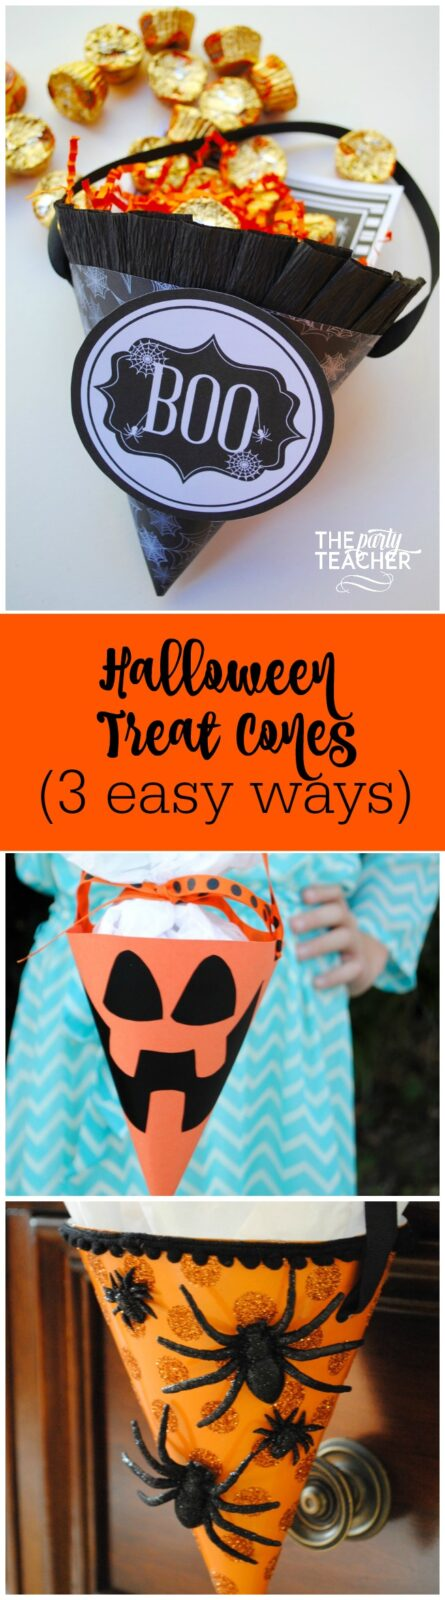 halloween-treat-cones-3-easy-ways-by-the-party-teacher